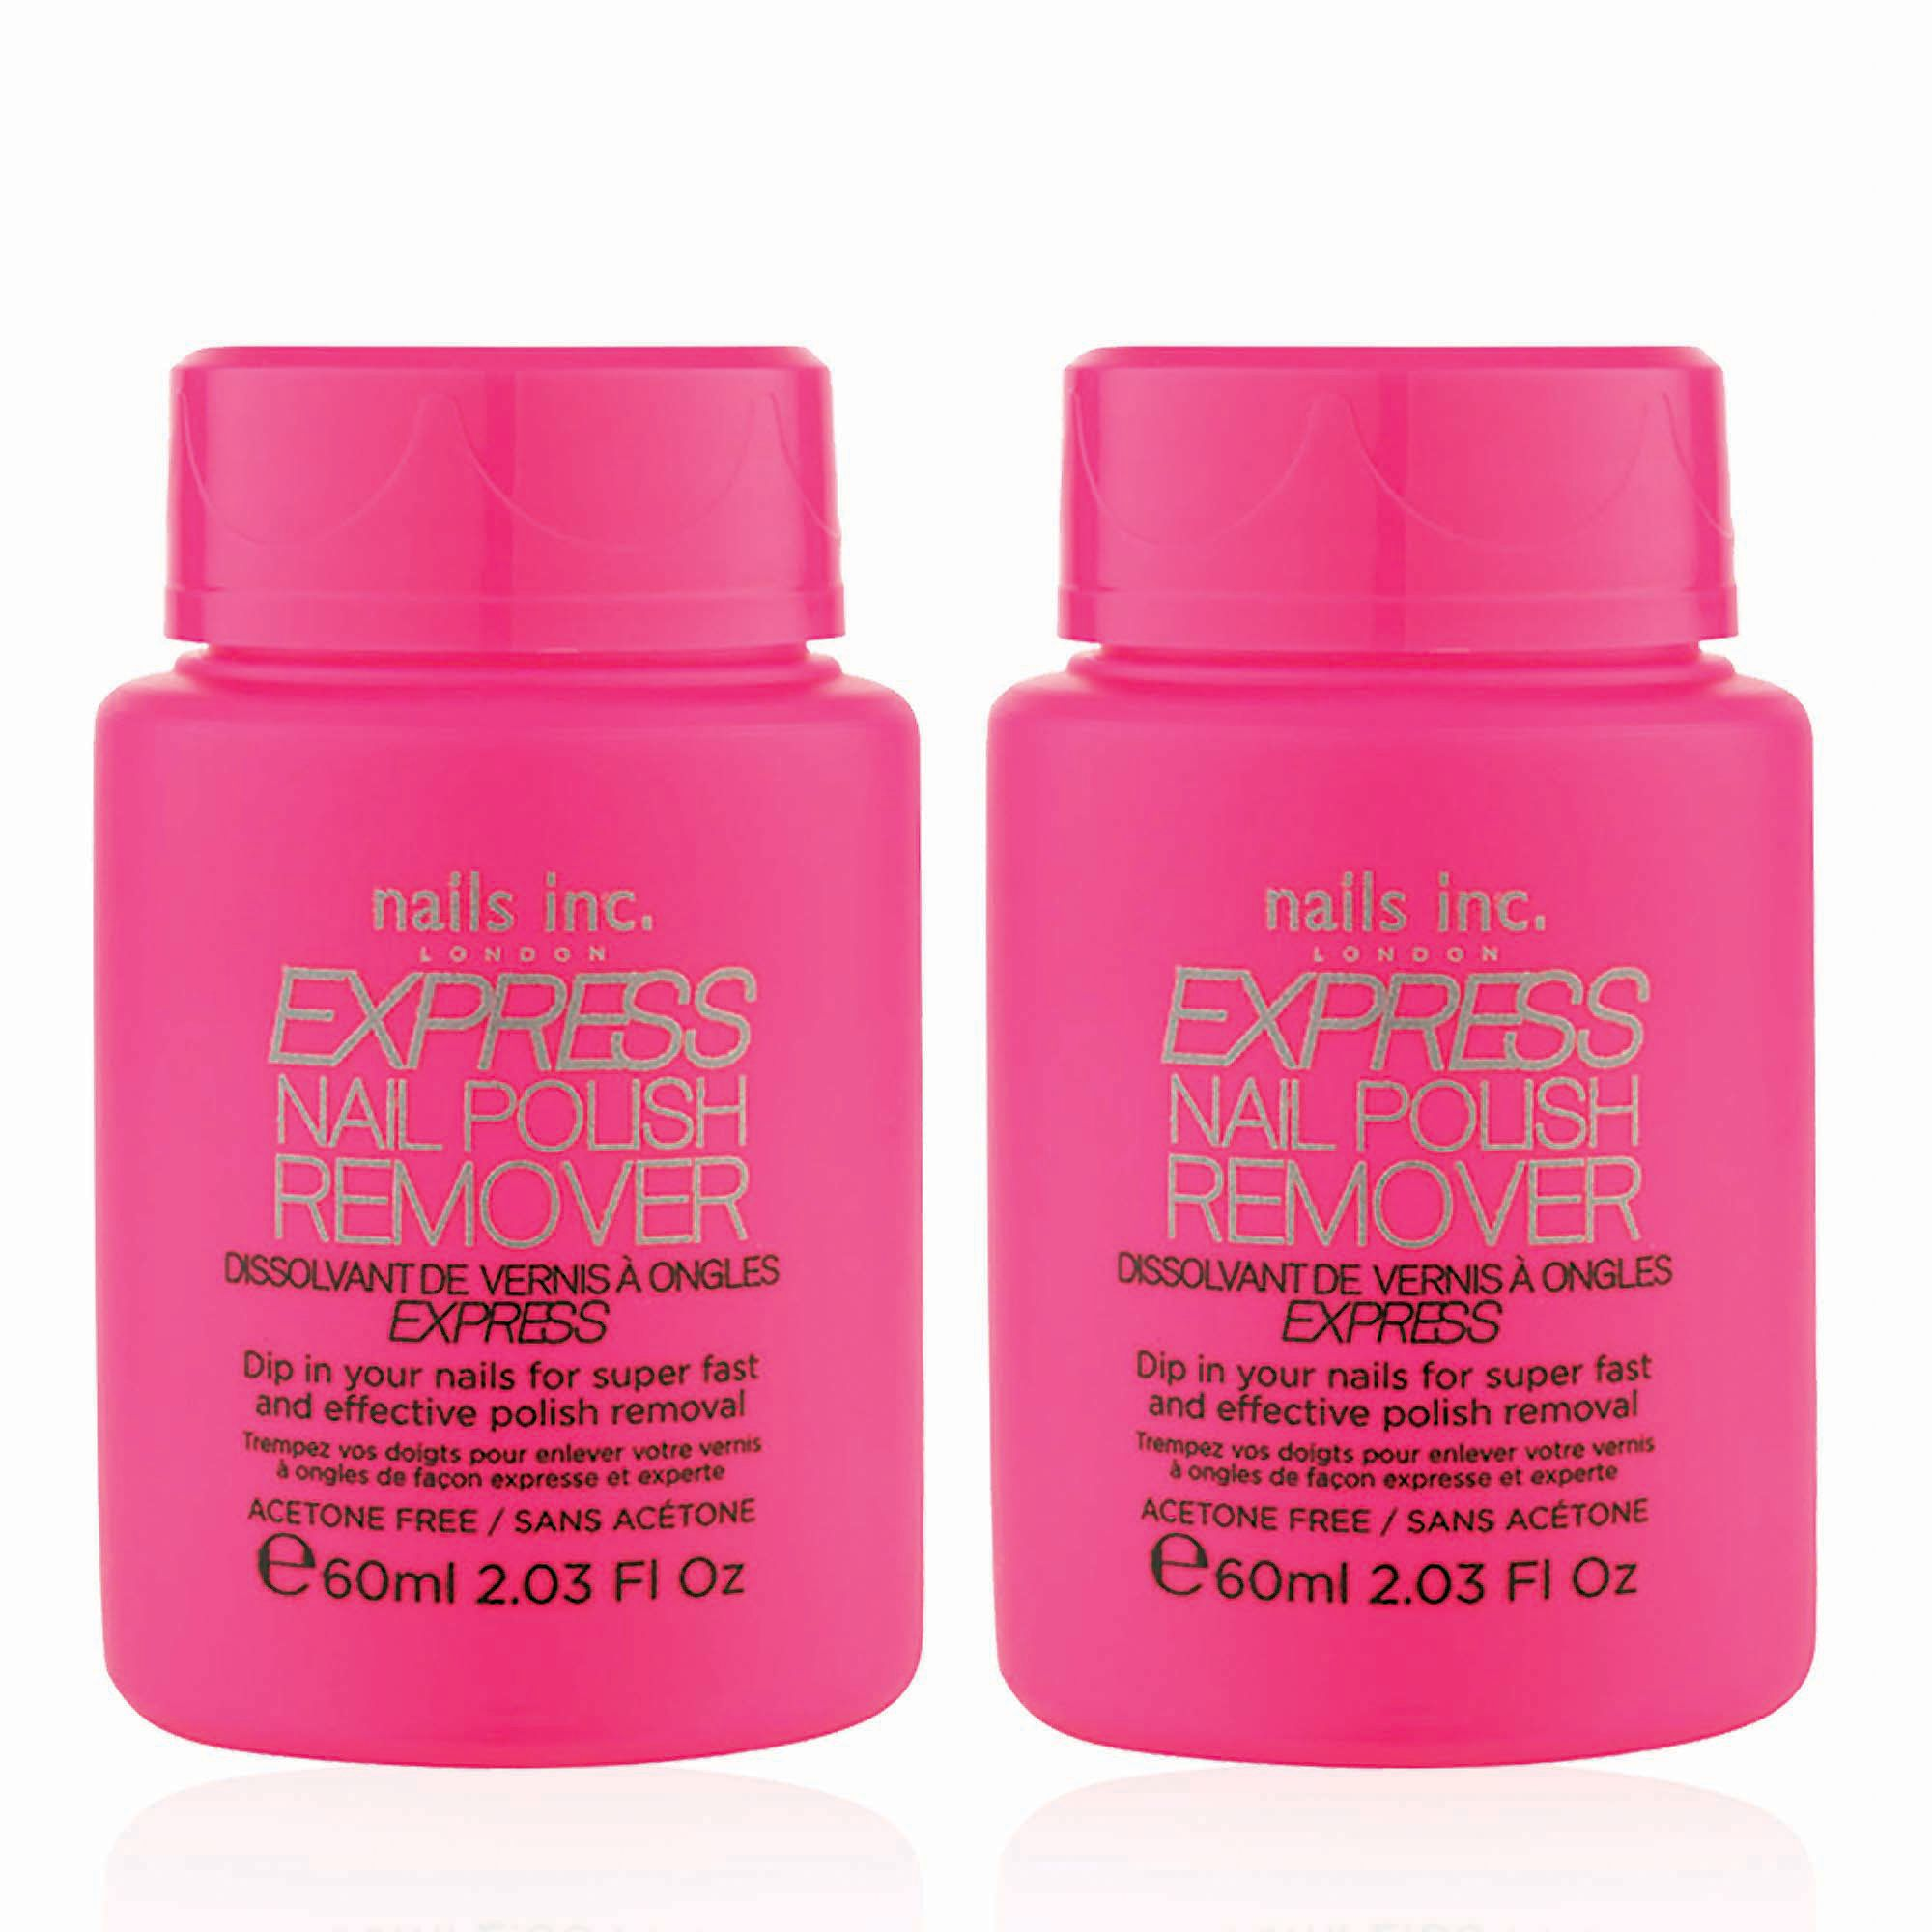 express nail polish remover solvente per unghie 2 pz qvc italia. Black Bedroom Furniture Sets. Home Design Ideas